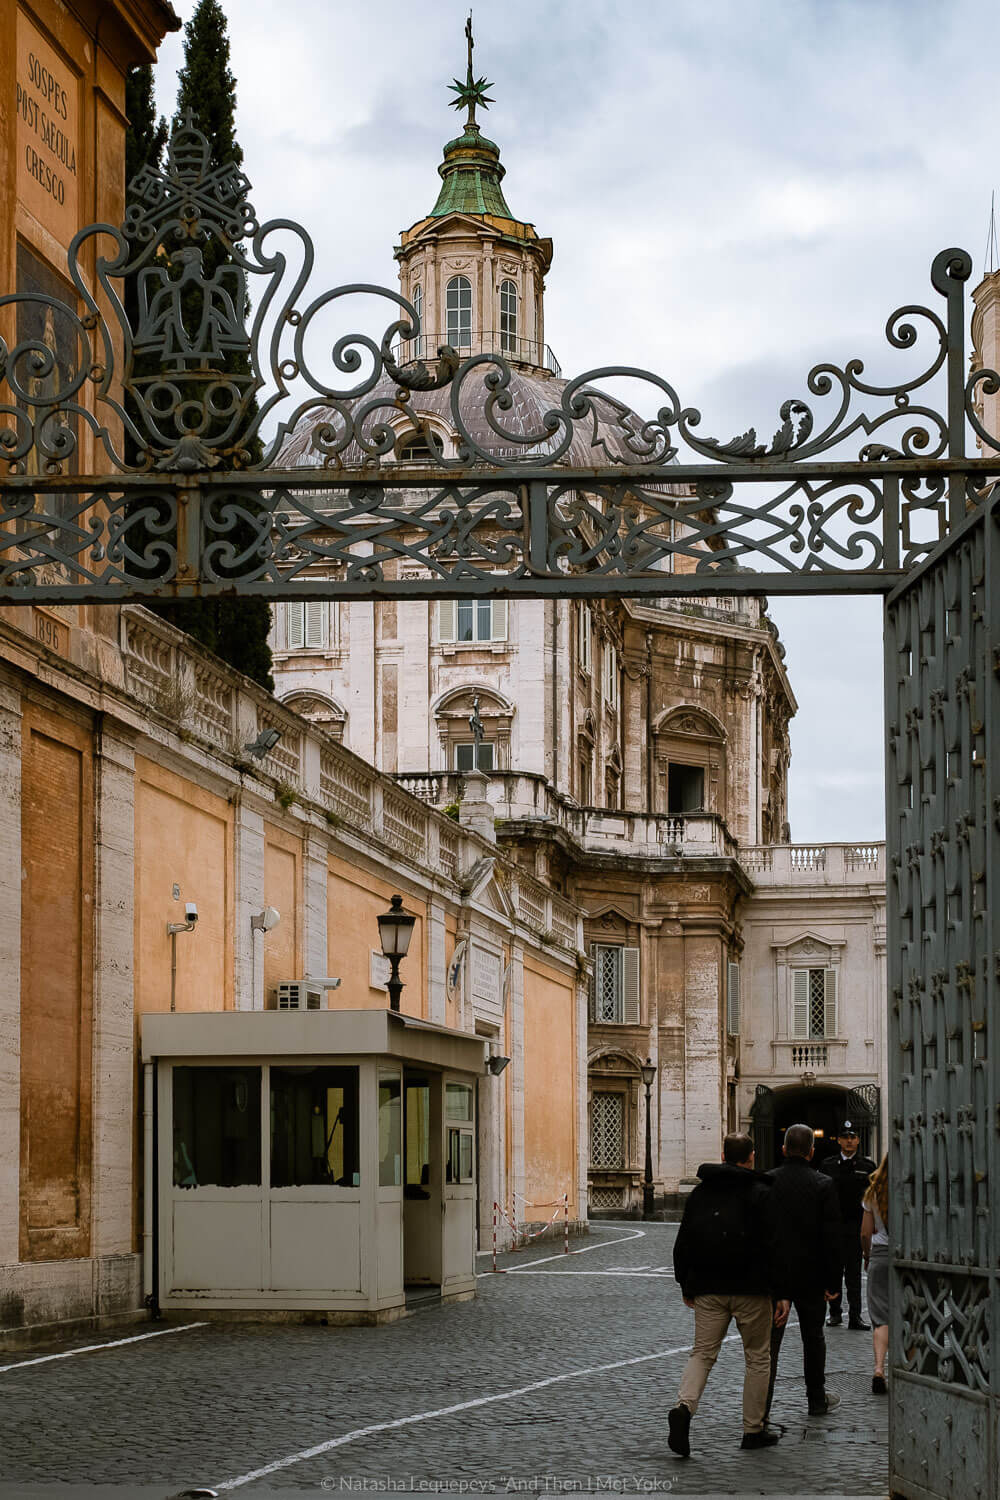 """Entering the Vatican for the Scavi Tour. Travel photography and guide by © Natasha Lequepeys for """"And Then I Met Yoko"""". #rome #italy #travelblog #travelphotography"""